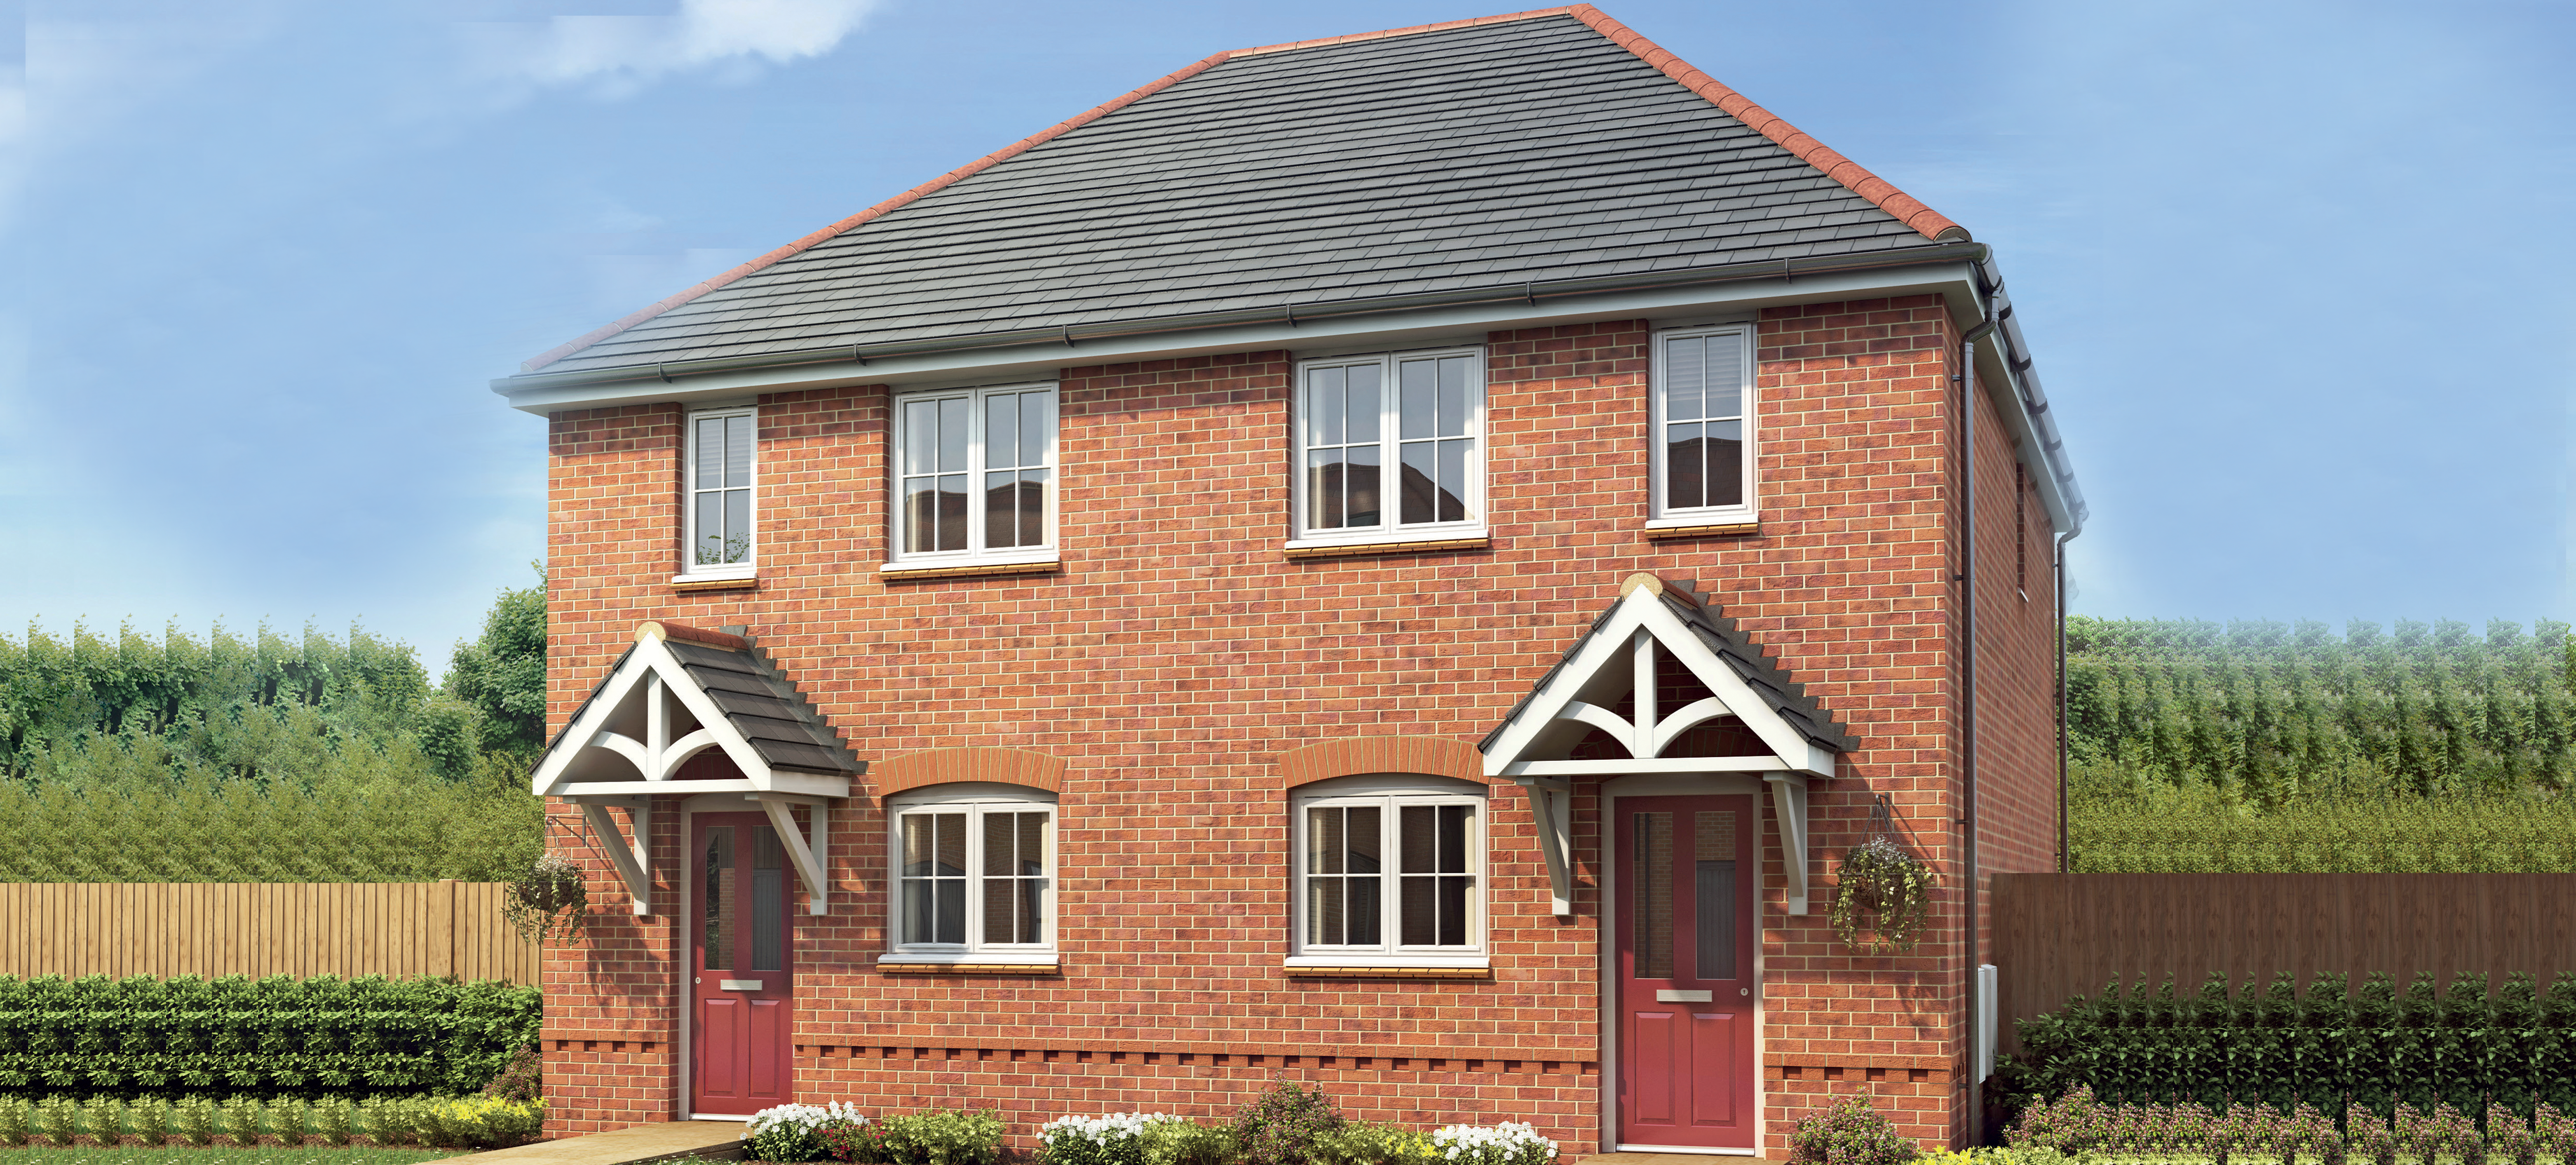 Our homes - affordable in Sandbach   Featured Image